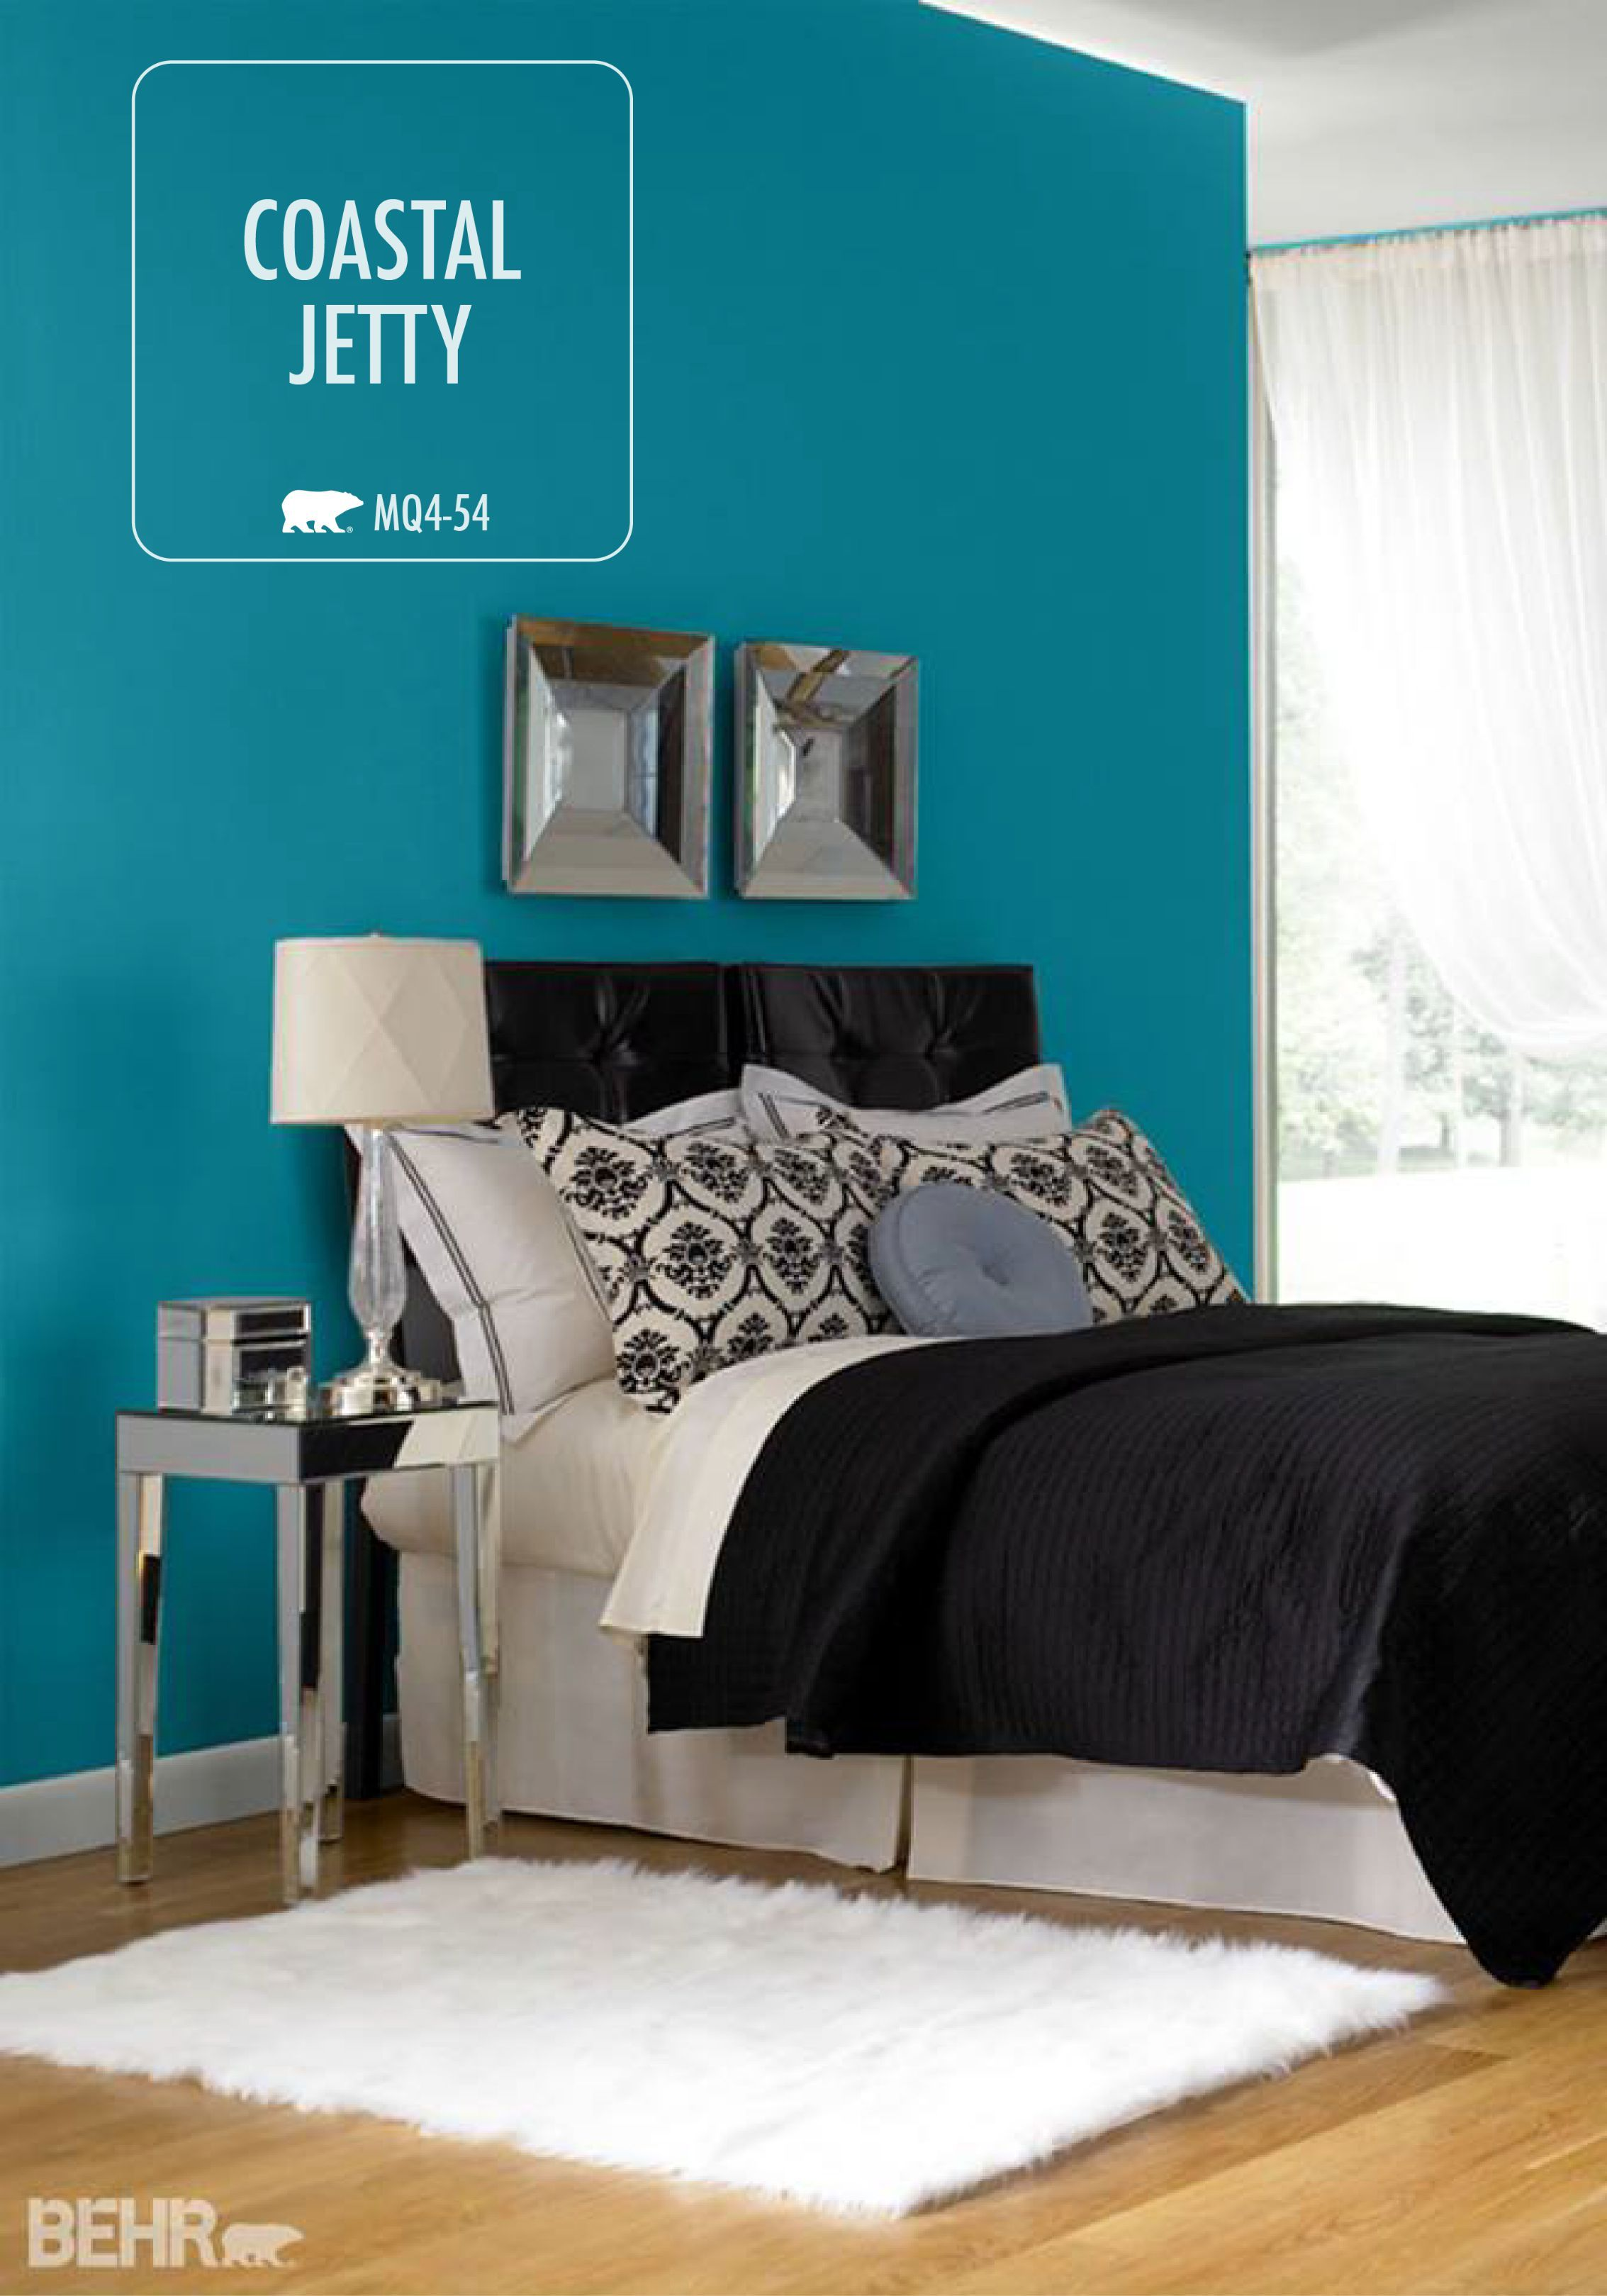 Bring the beach home by painting your bedroom walls with a